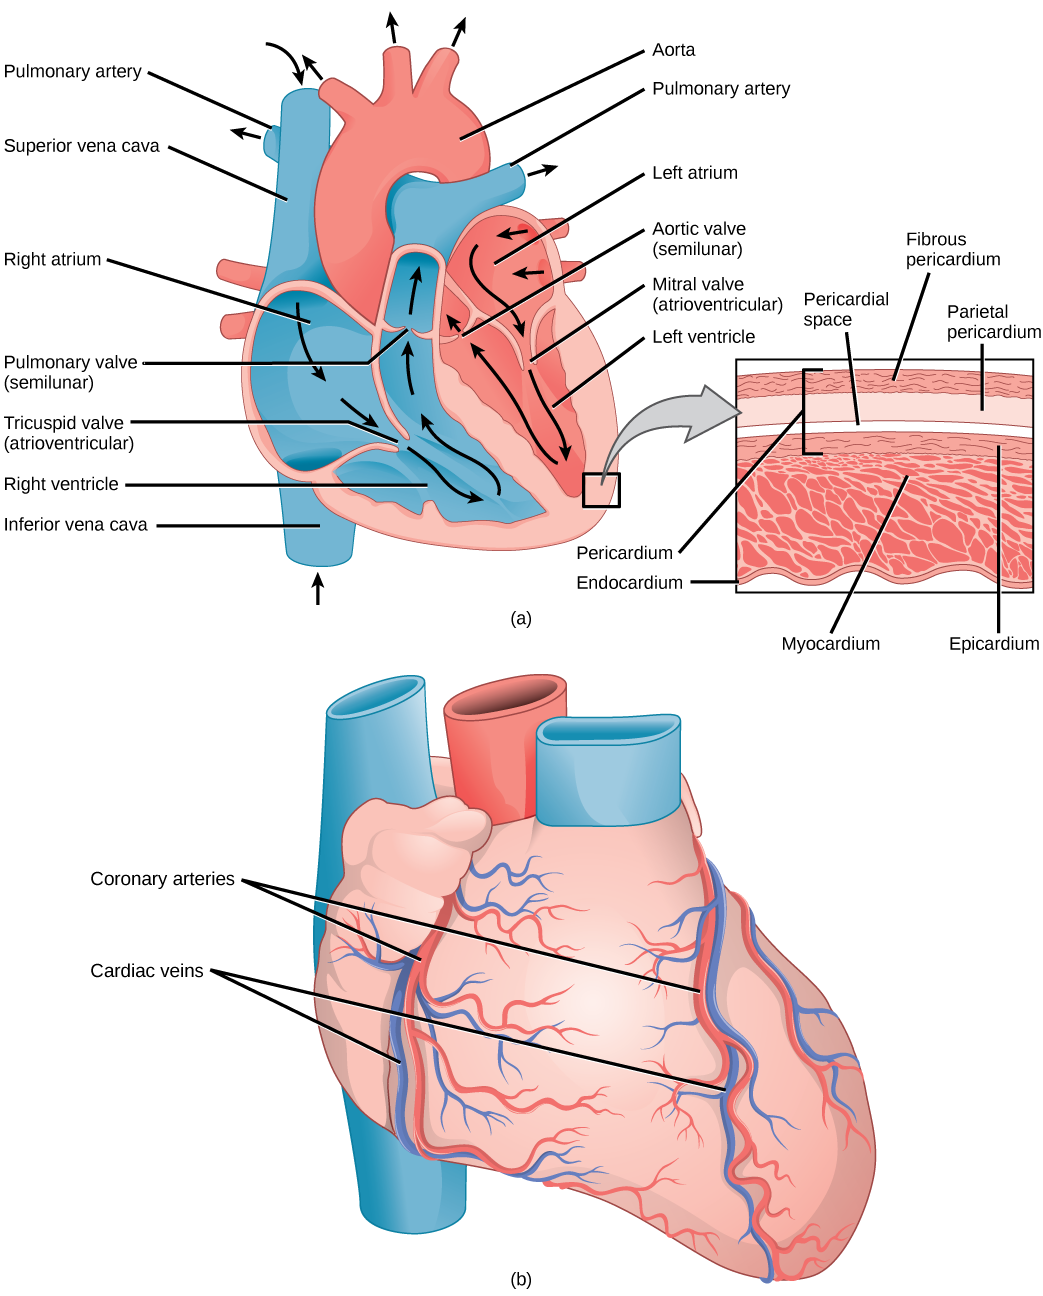 Annotated drawing heart.  mammalian and blood image